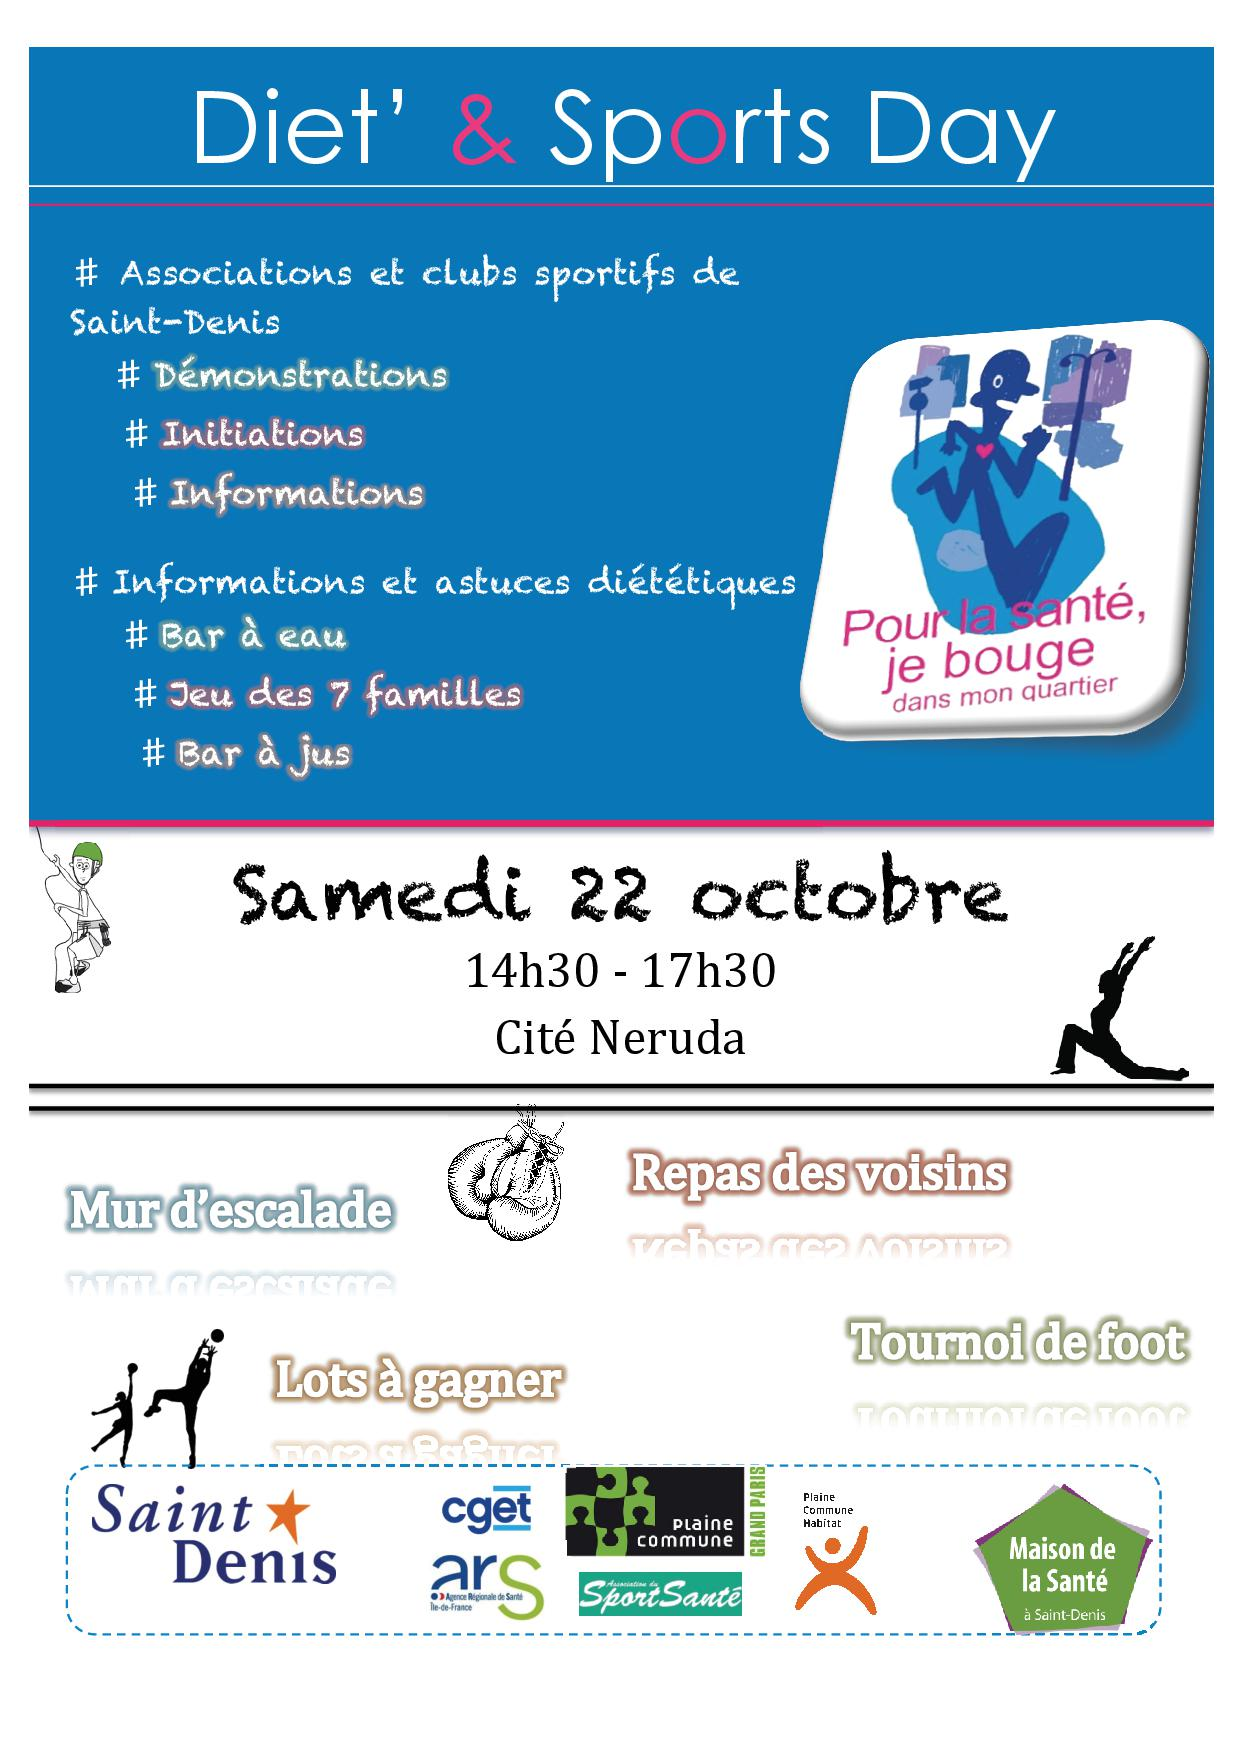 affiche-diet-sport-day-22-octobre-2016